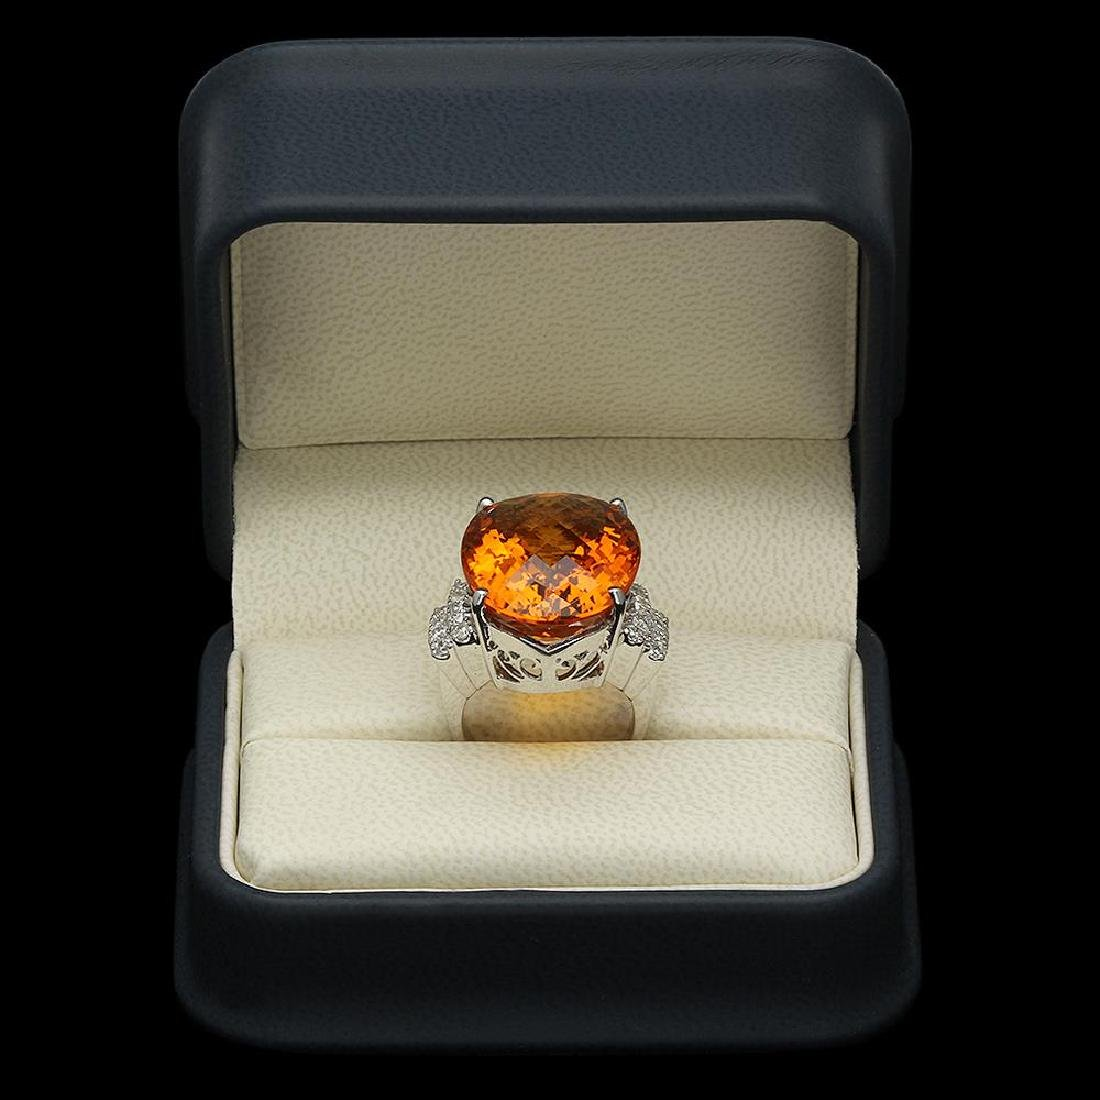 14K Gold 27.77ct Citrine 0.79ct Diamond Ring - 4